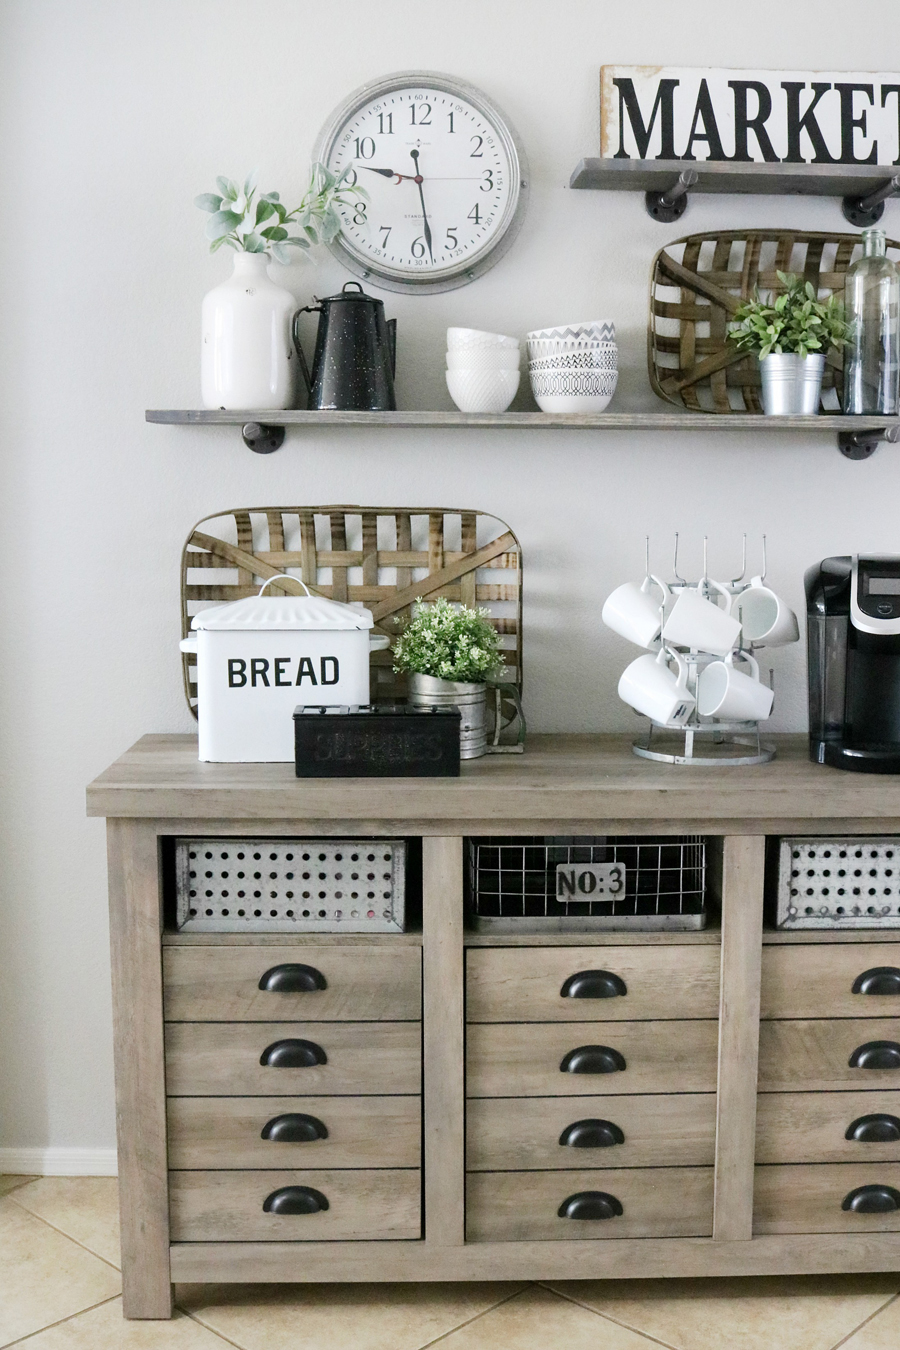 Walmart Living Room Wall Decor: Modern Farmhouse Inspired Coffee Bar Station